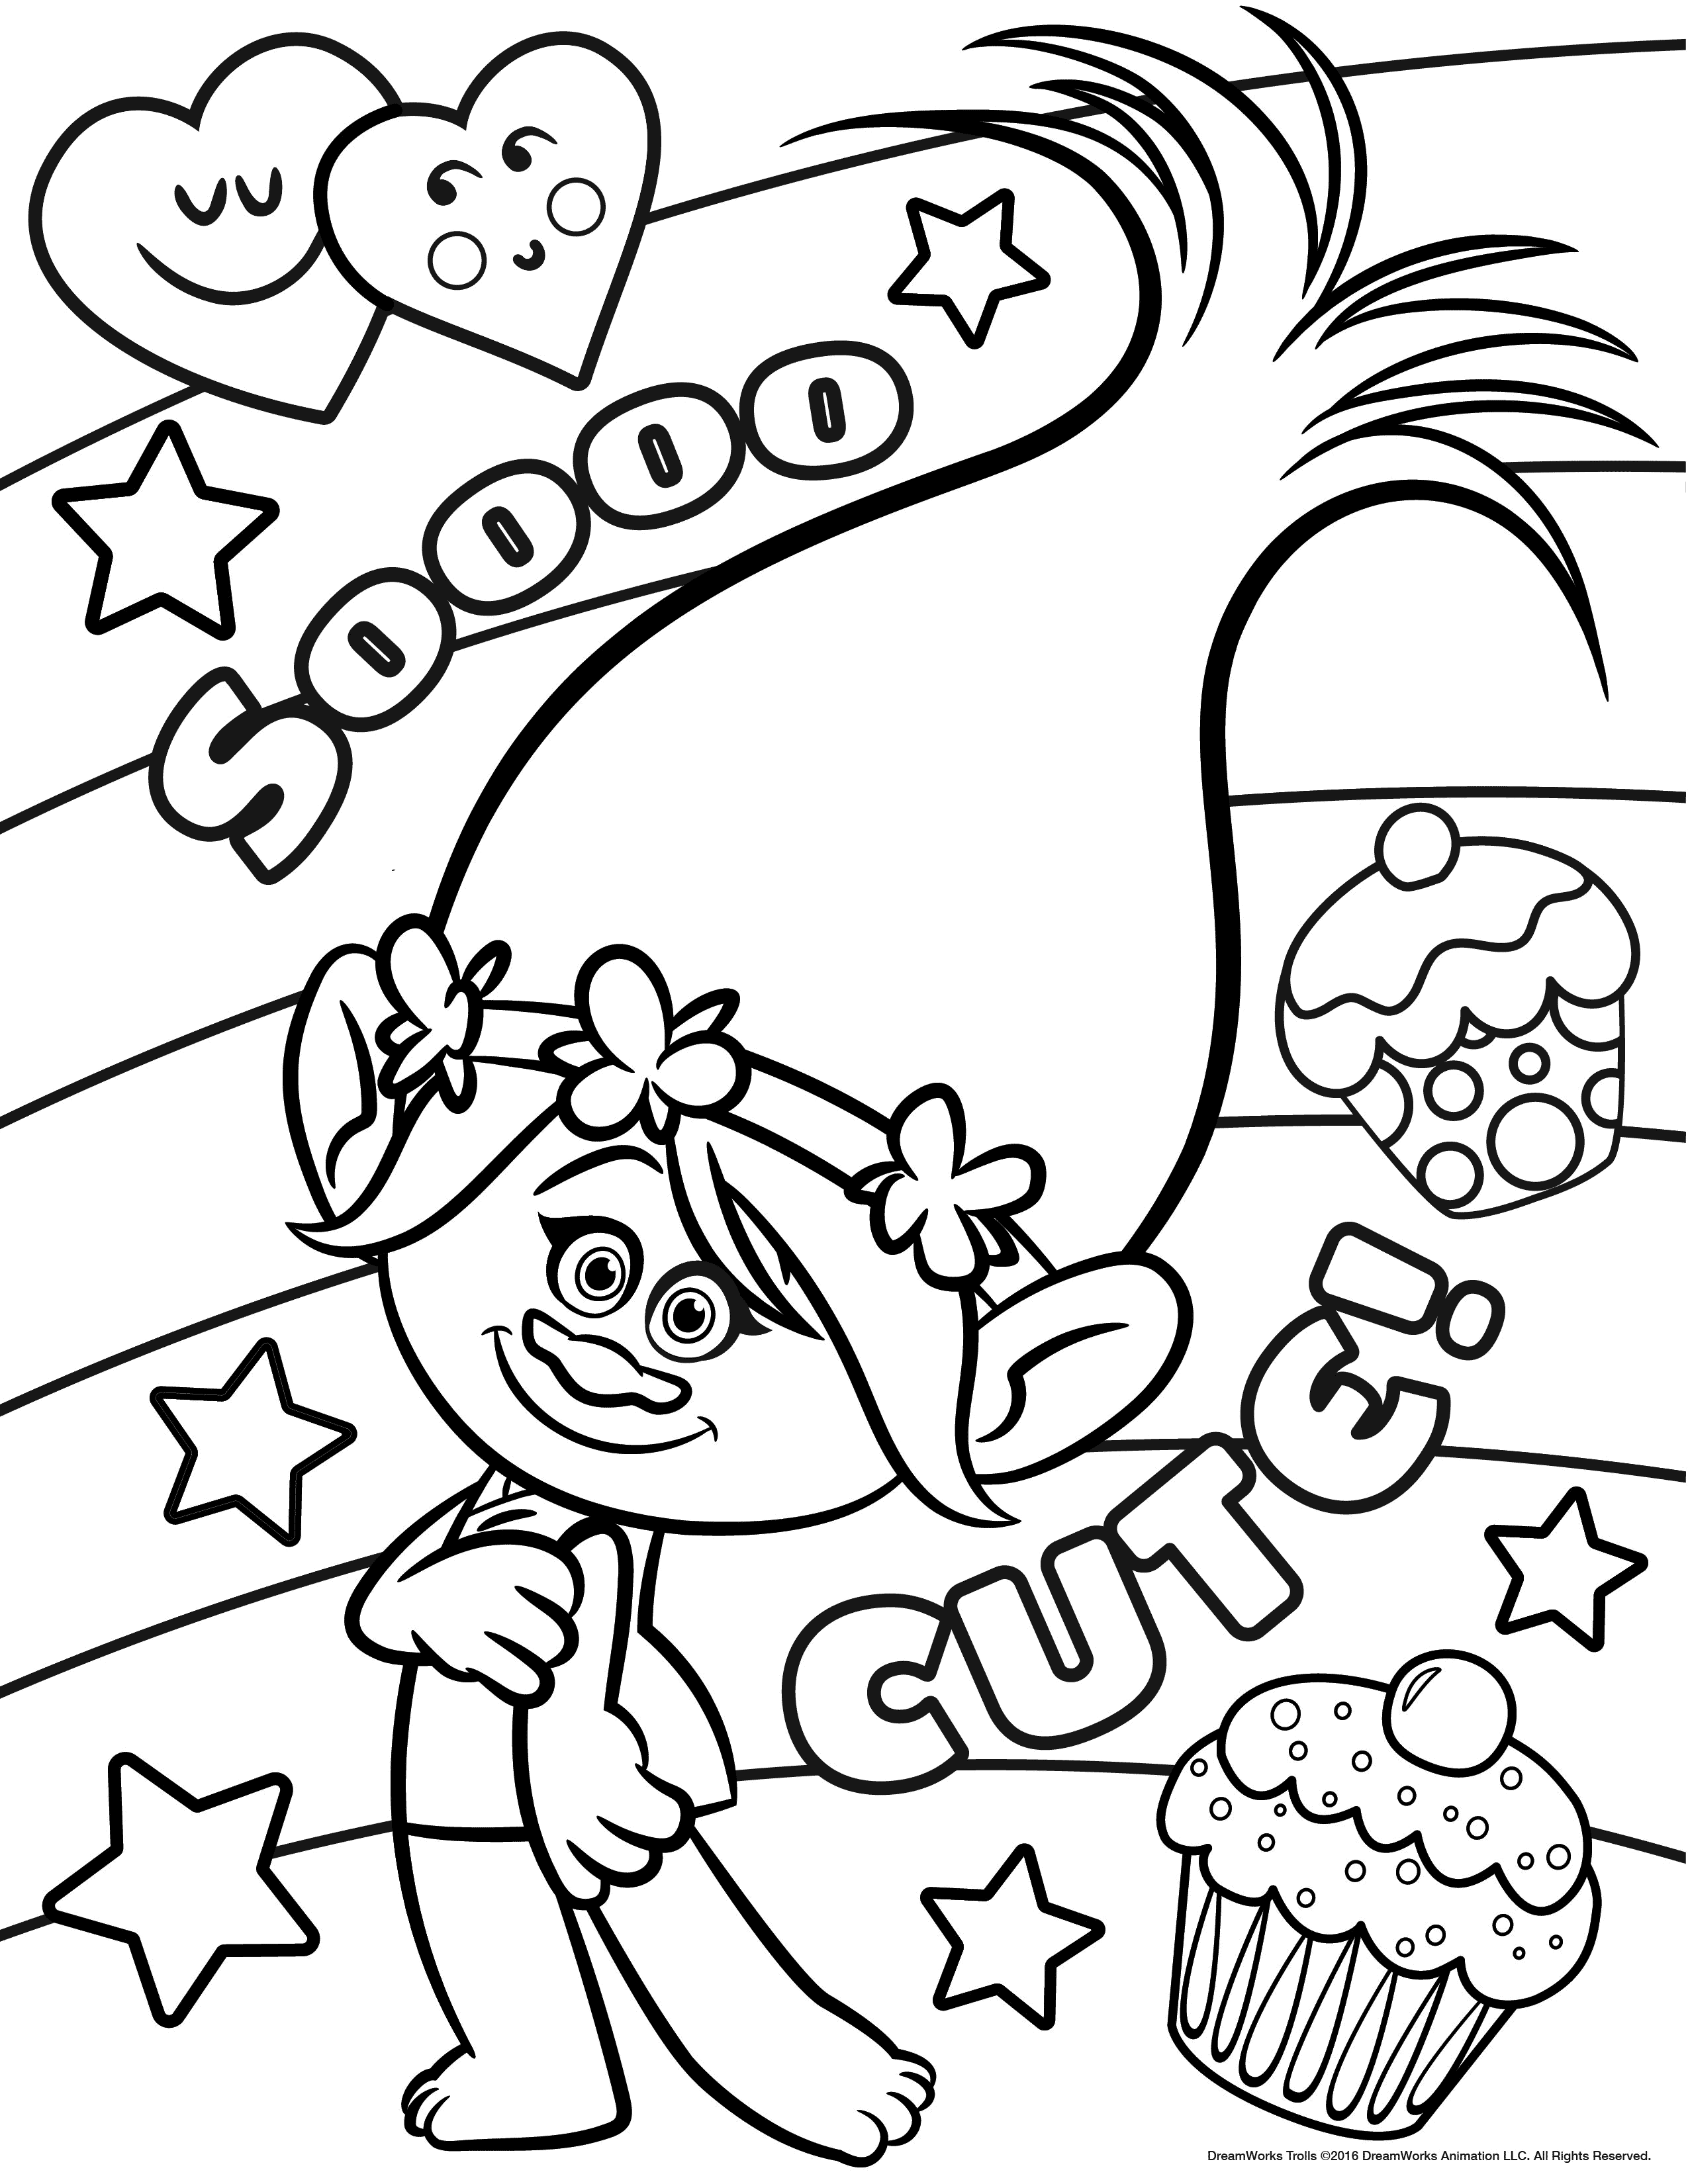 photo relating to Trolls Printable known as Totally free Printable Troll Coloring Webpages at